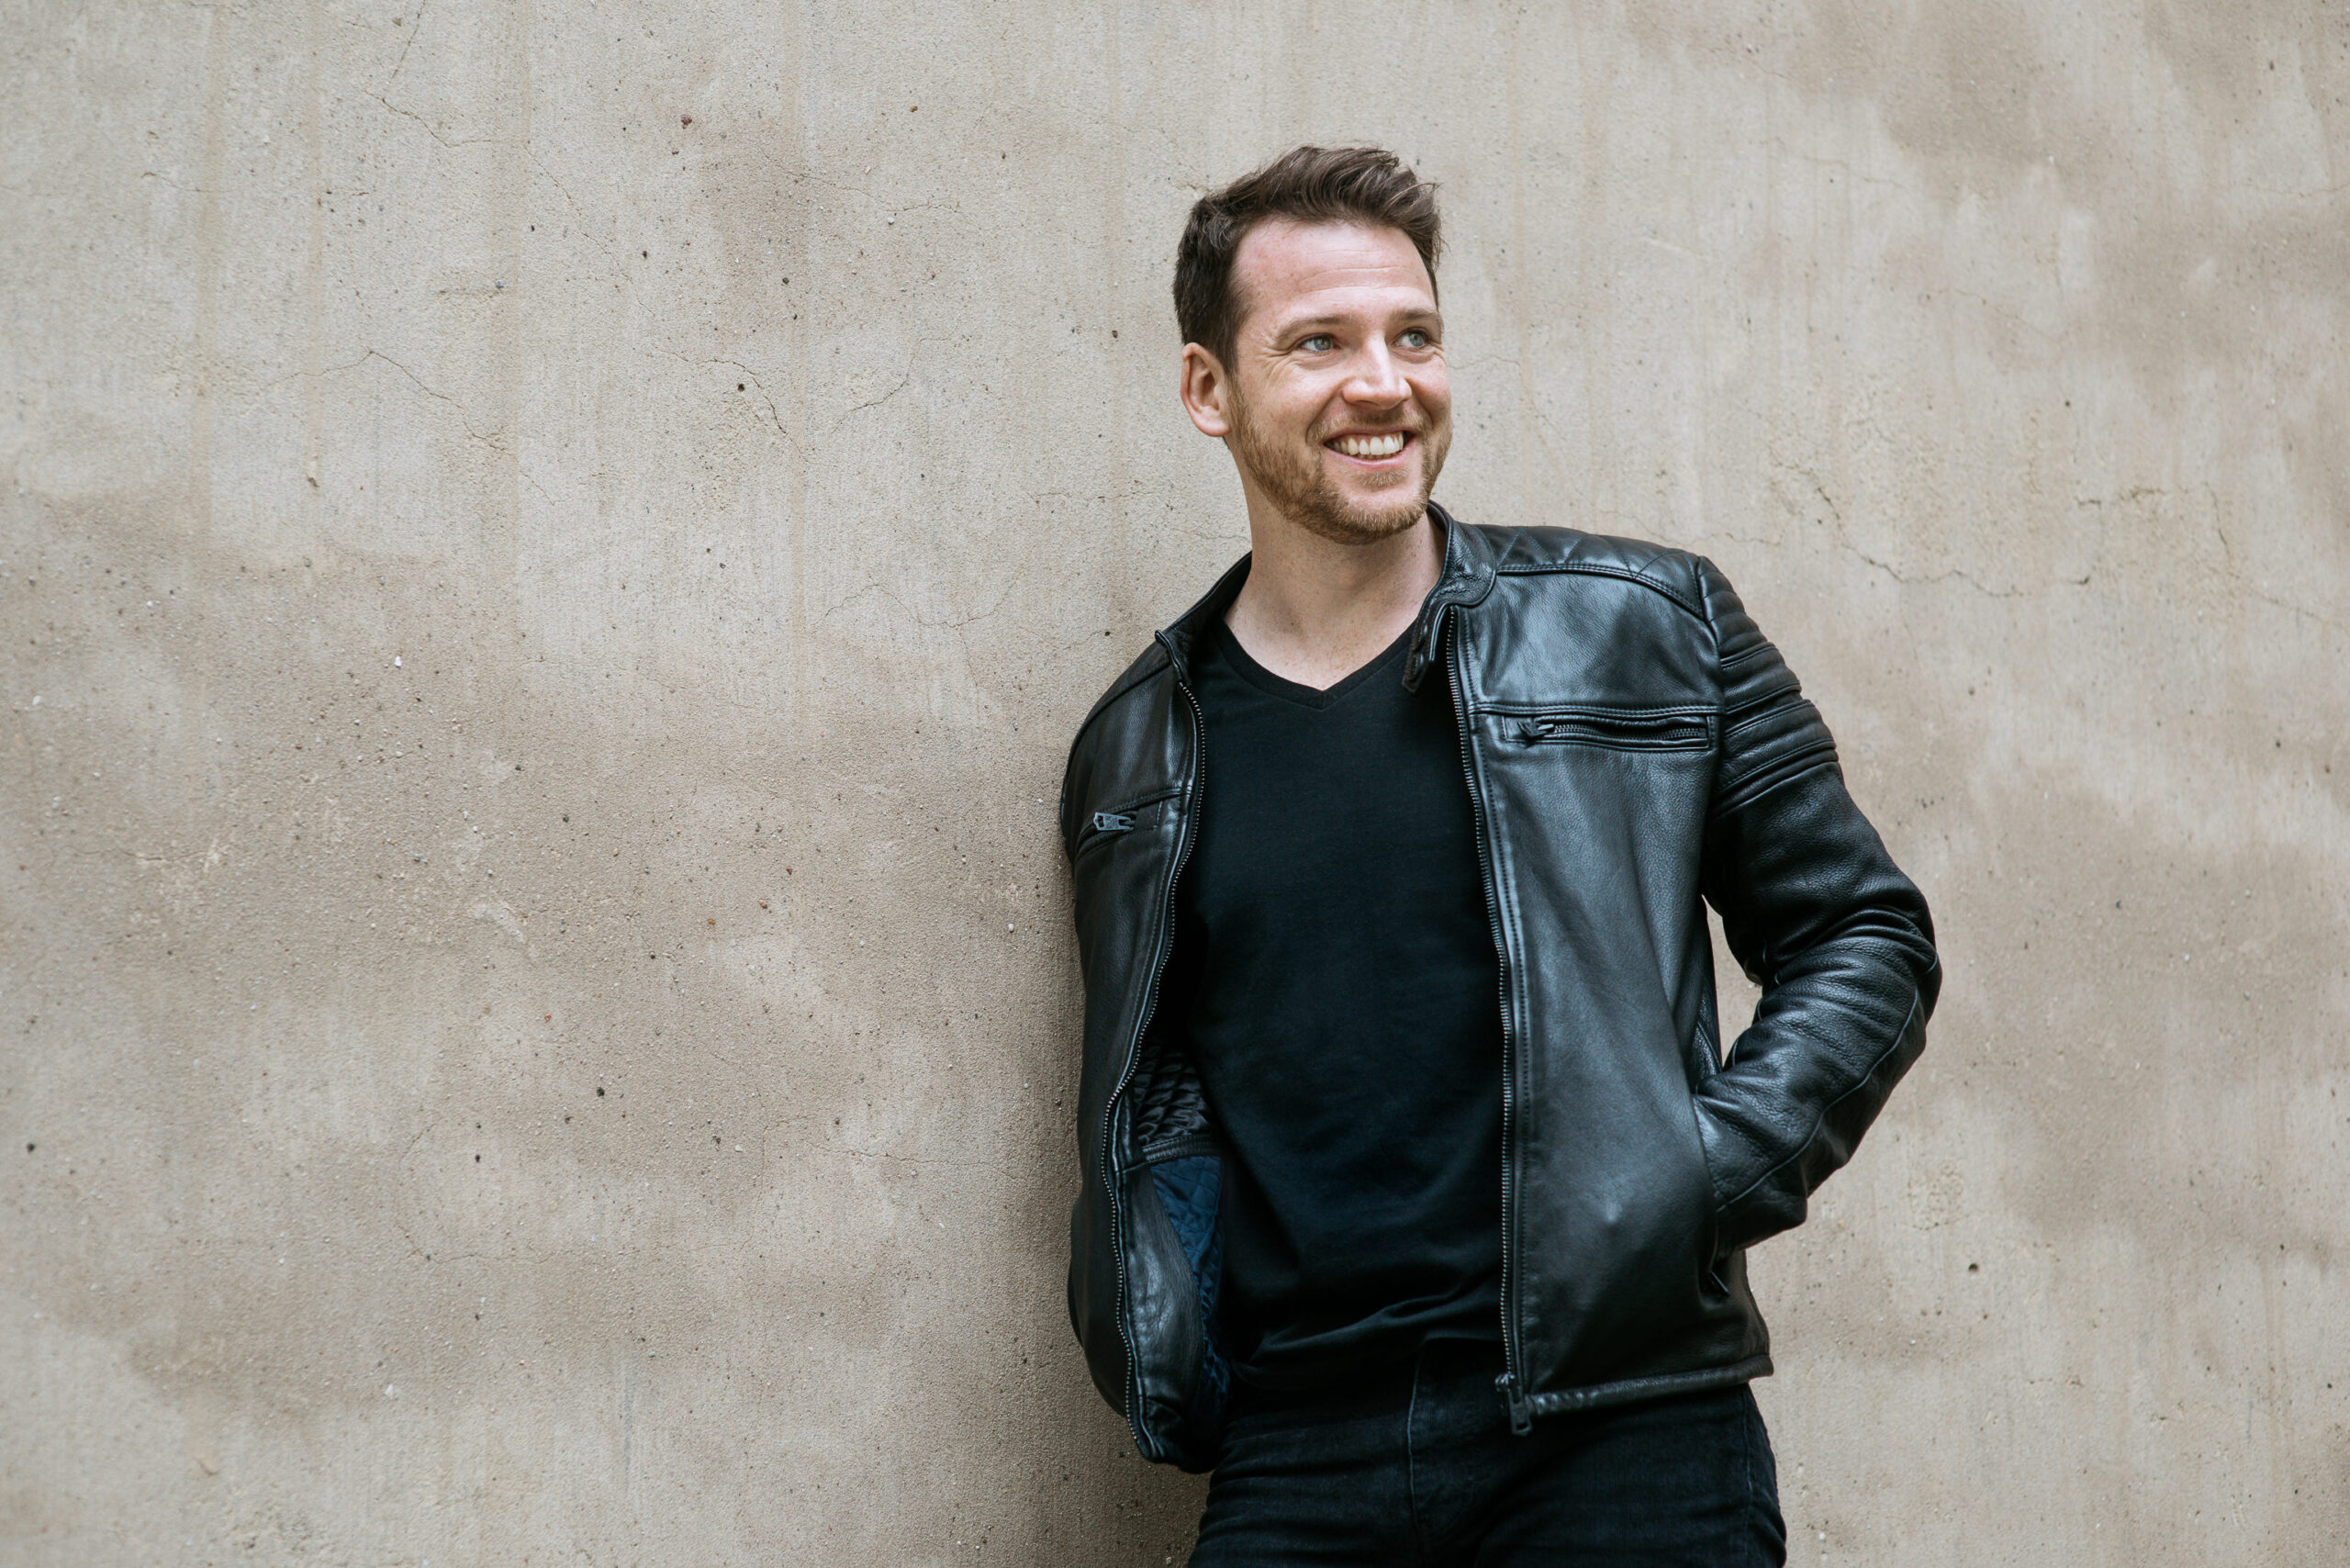 Richard leaning against a concrete wall, smiling.